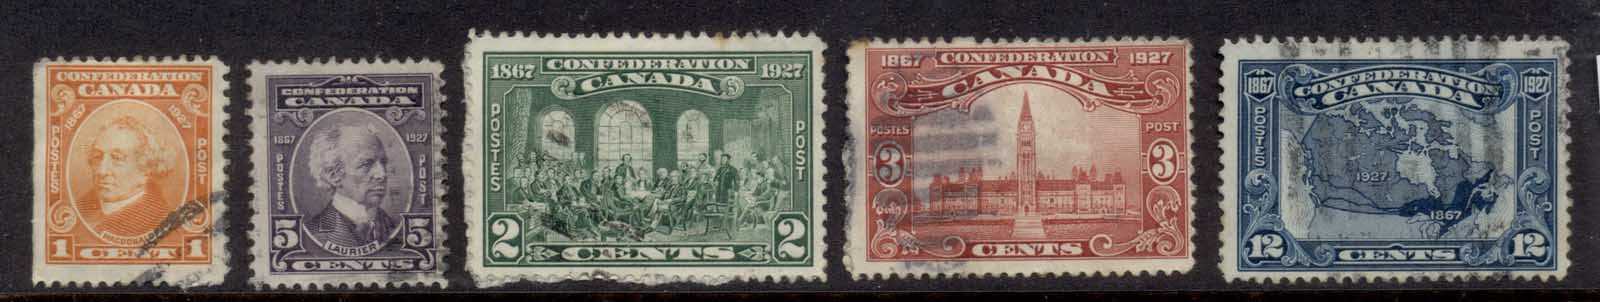 Canada 1927 Canadian federation (paper adhesions) FU